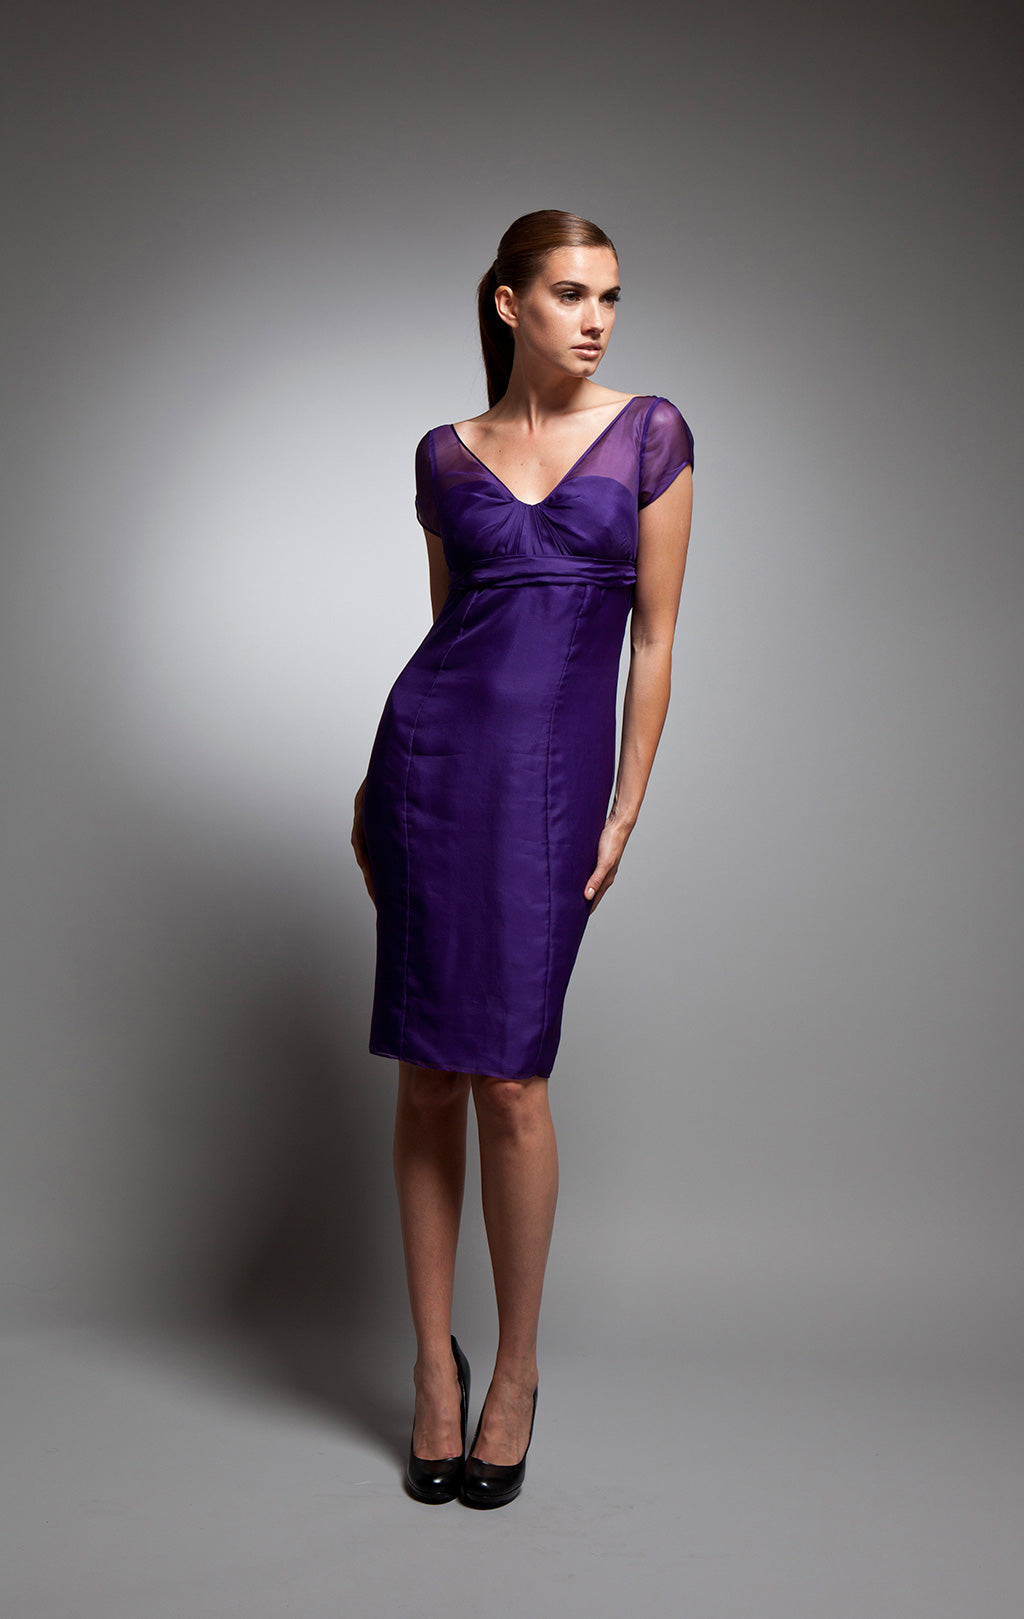 Caterina - Vivid purple silk organza v-neck dress